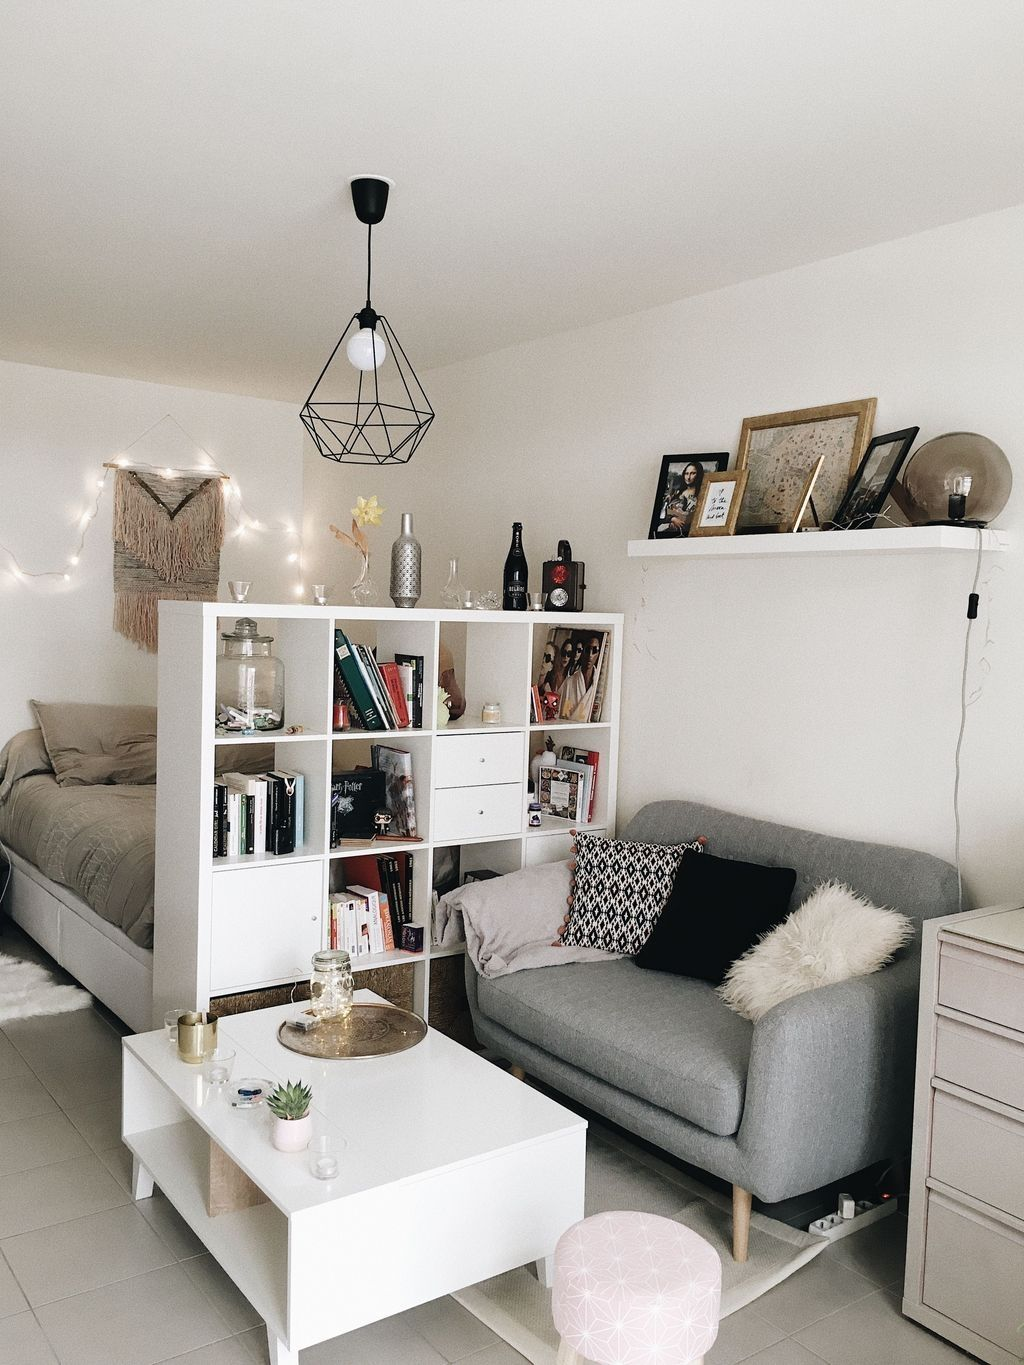 35 Unique Small Apartment Decorating Ideas On A Budget #apartmentdecor